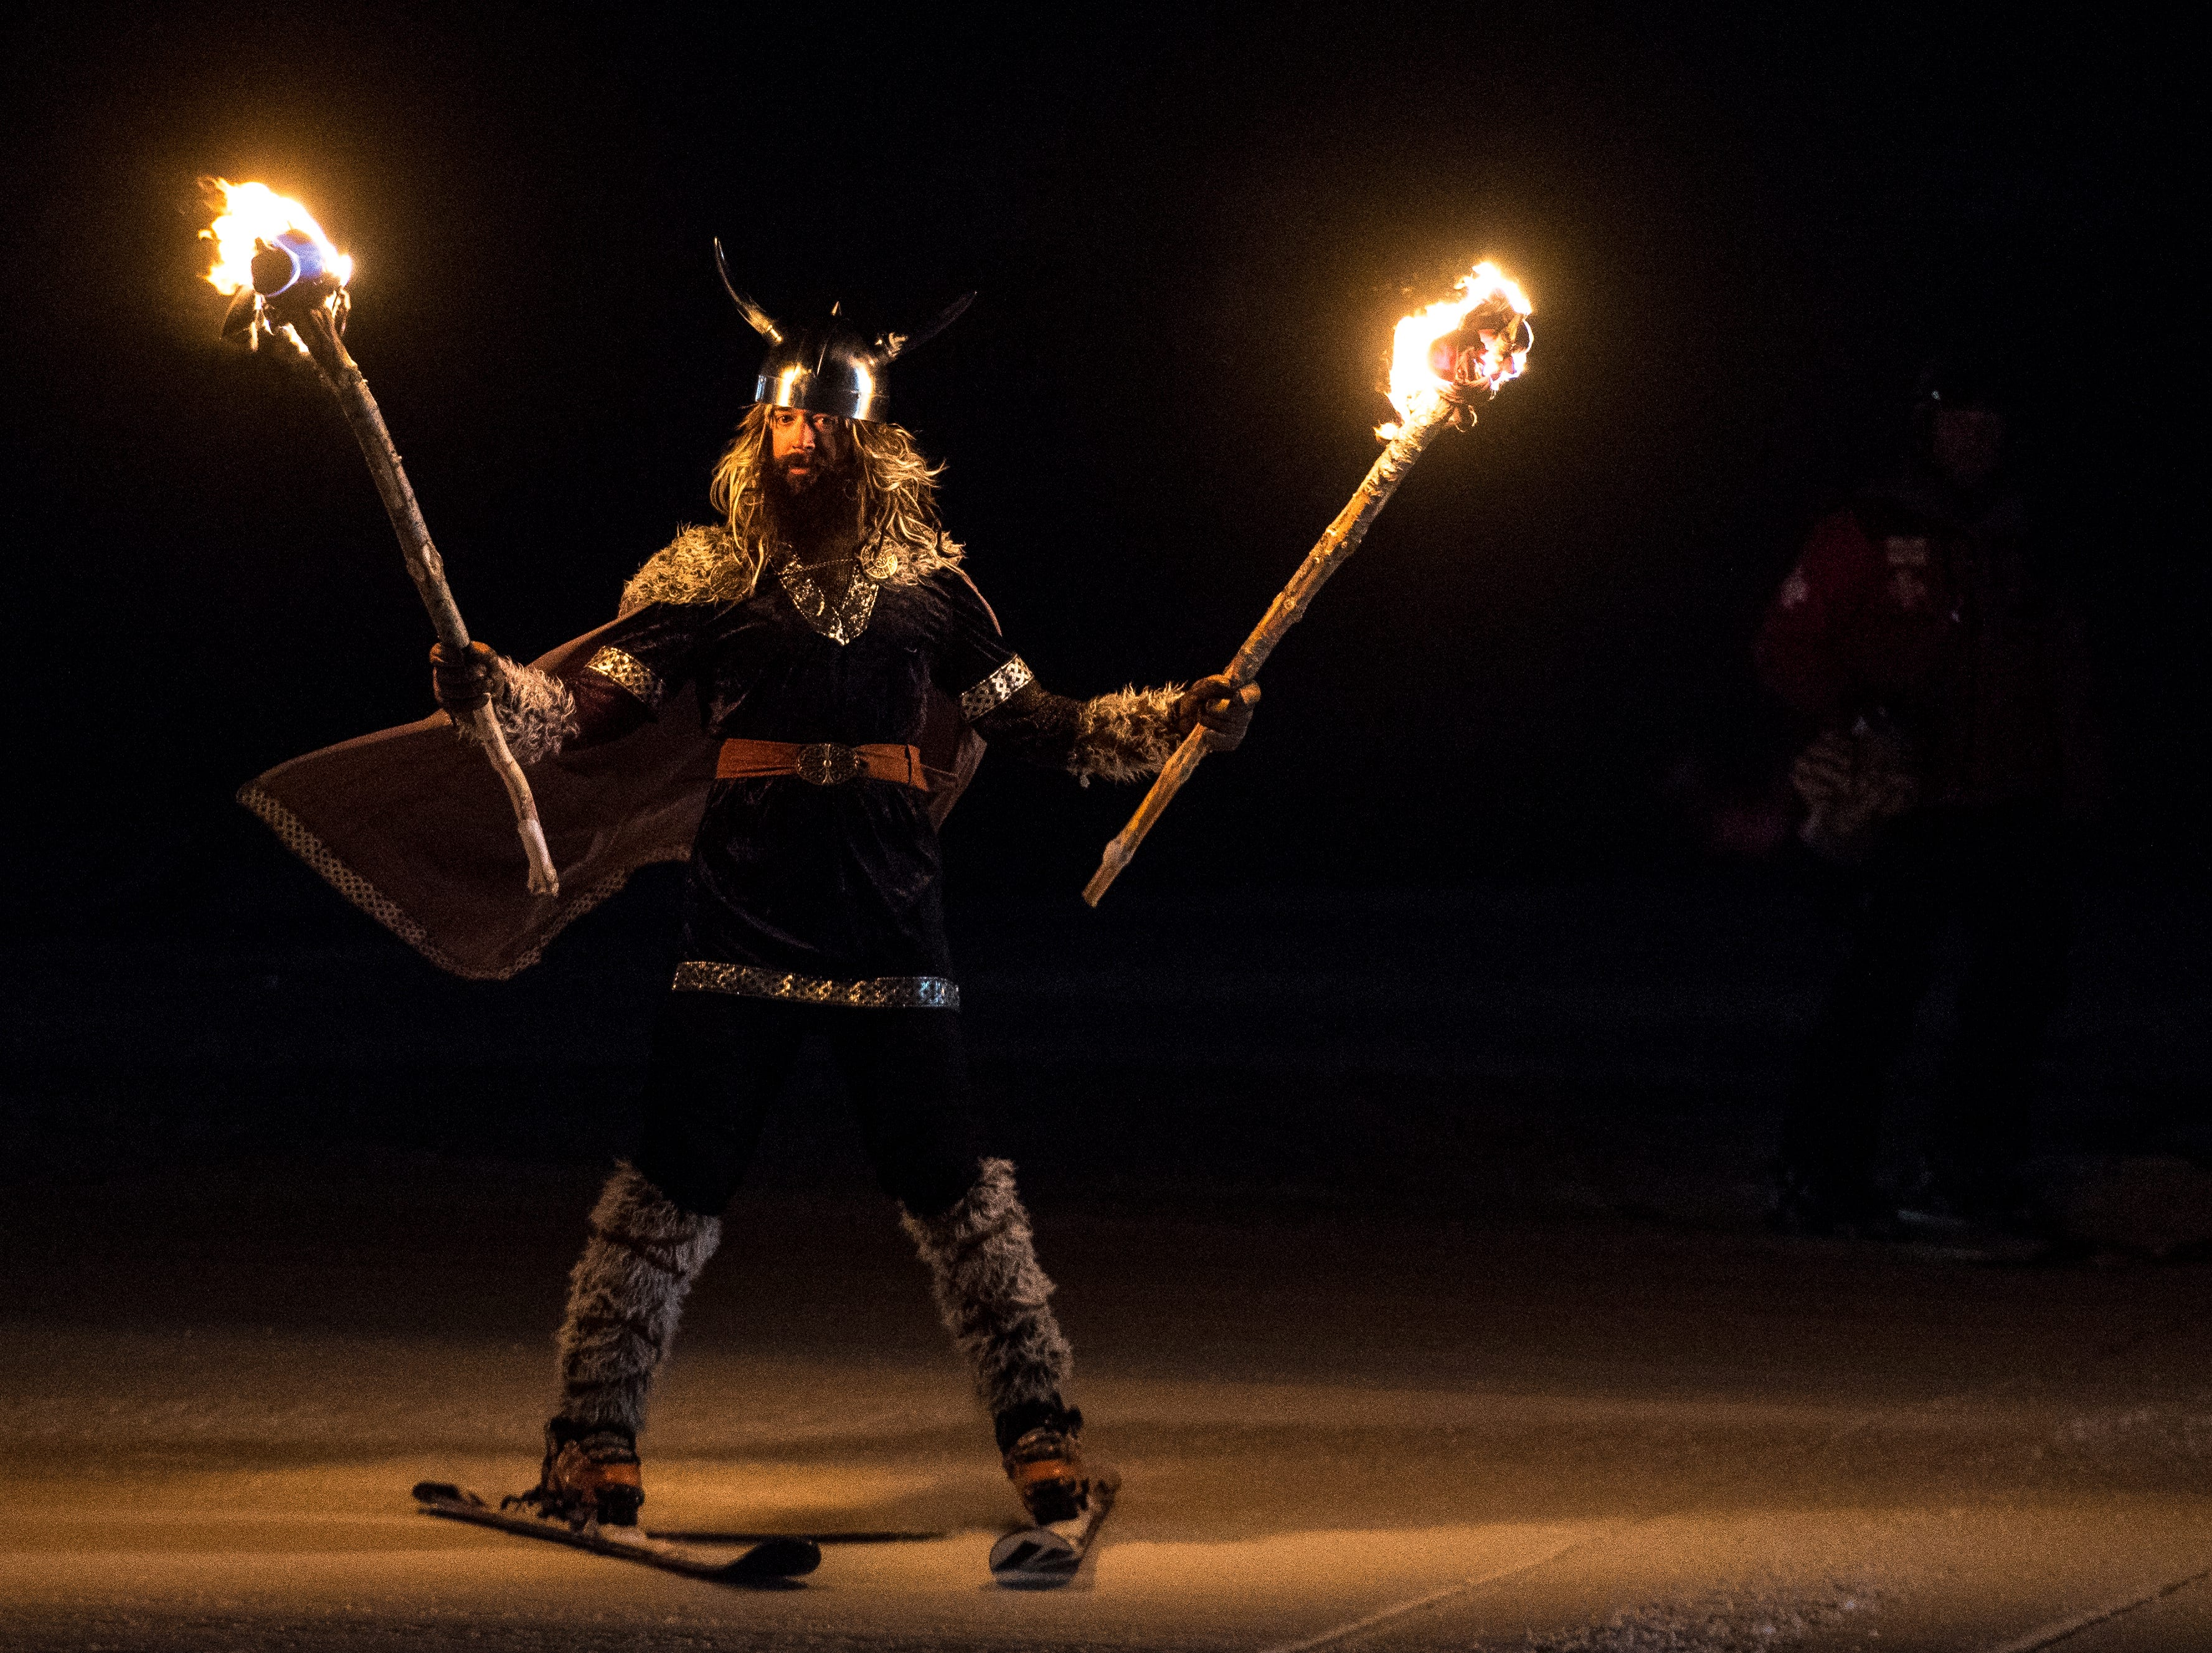 ULLR, the Norse god of snow, arrives for a winter celebration at Brian Head Resort Saturday, December 8, 2018. The celebration included live music, a drum circle, and fire dancing.